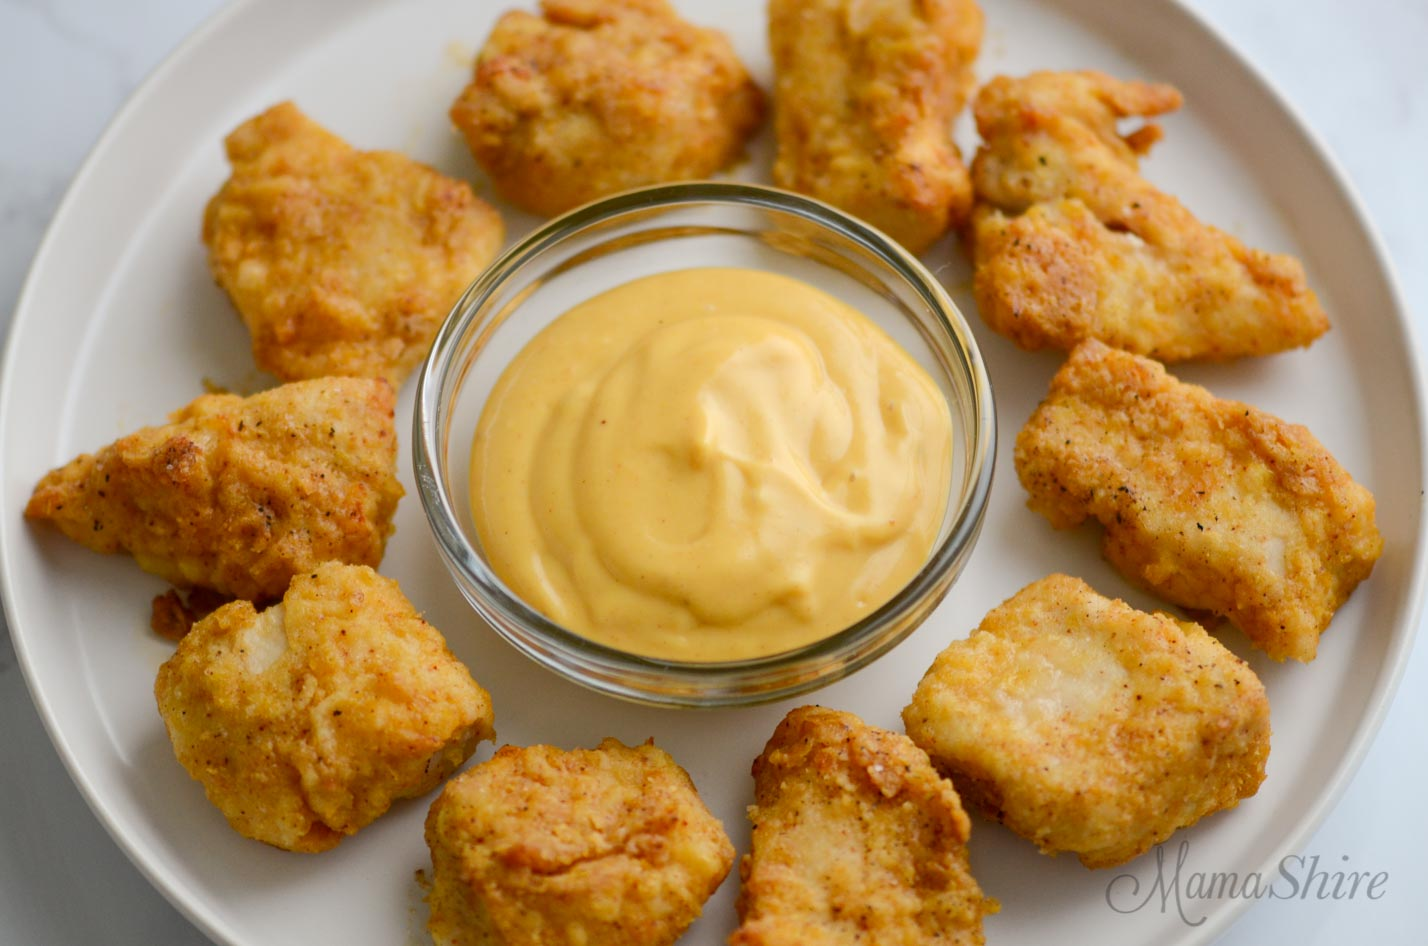 A bowl of gluten-free homemade Chick-Fil-A sauce